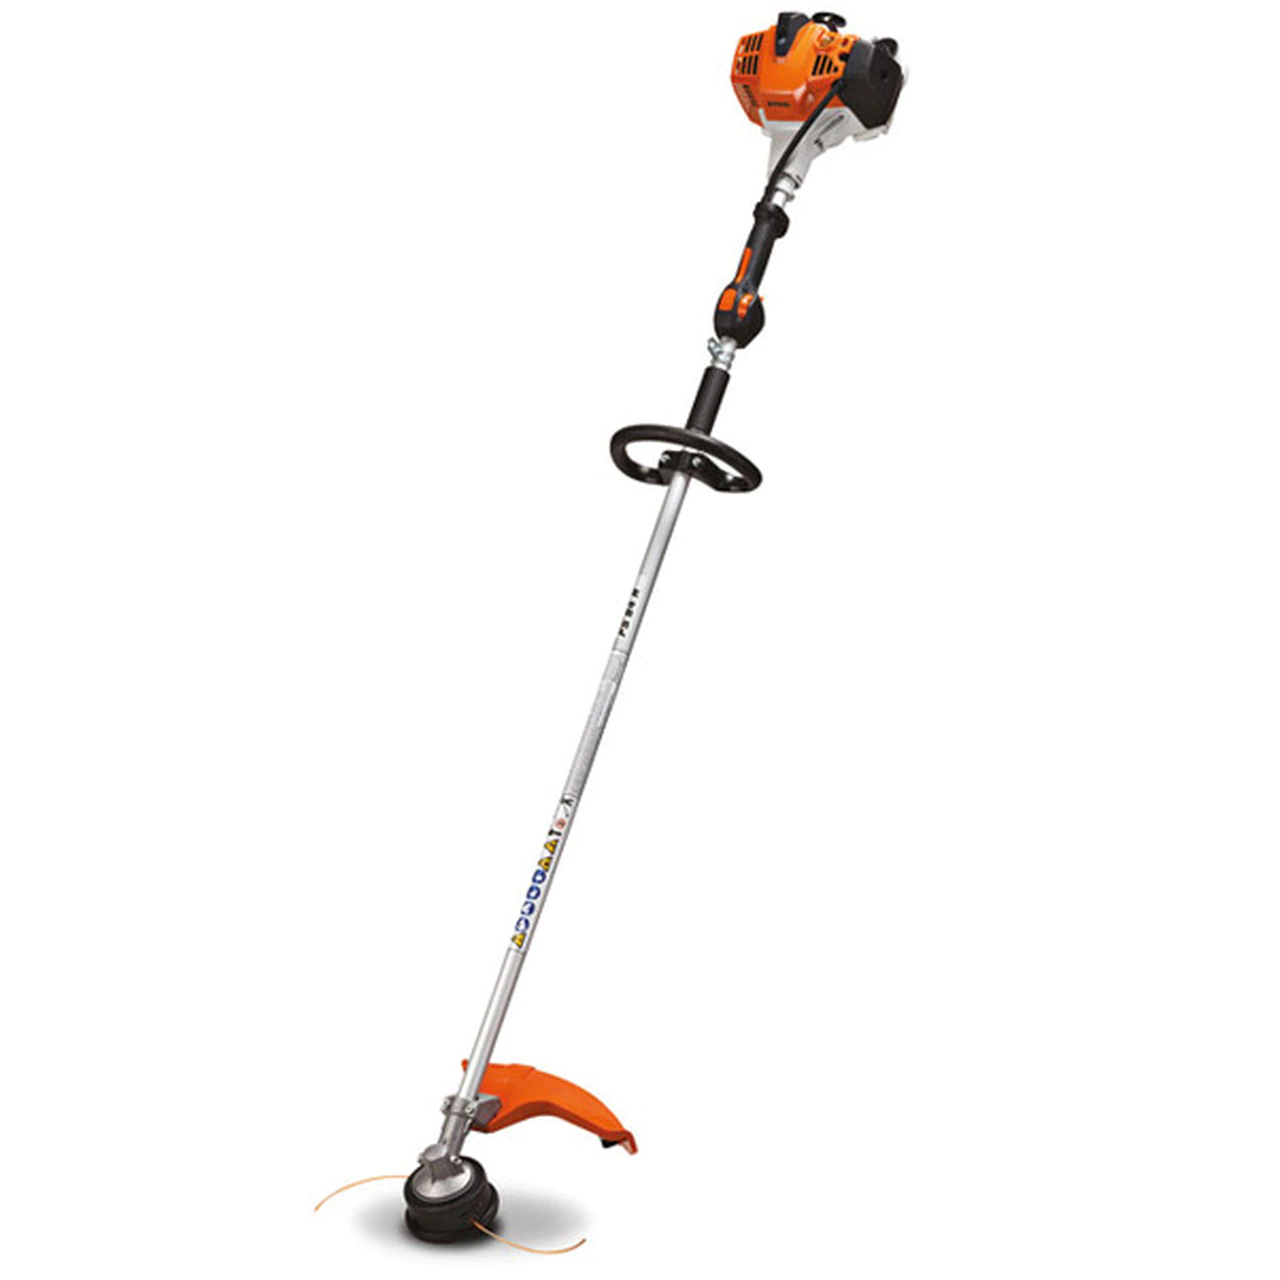 difference between echo vs stihl trimmer